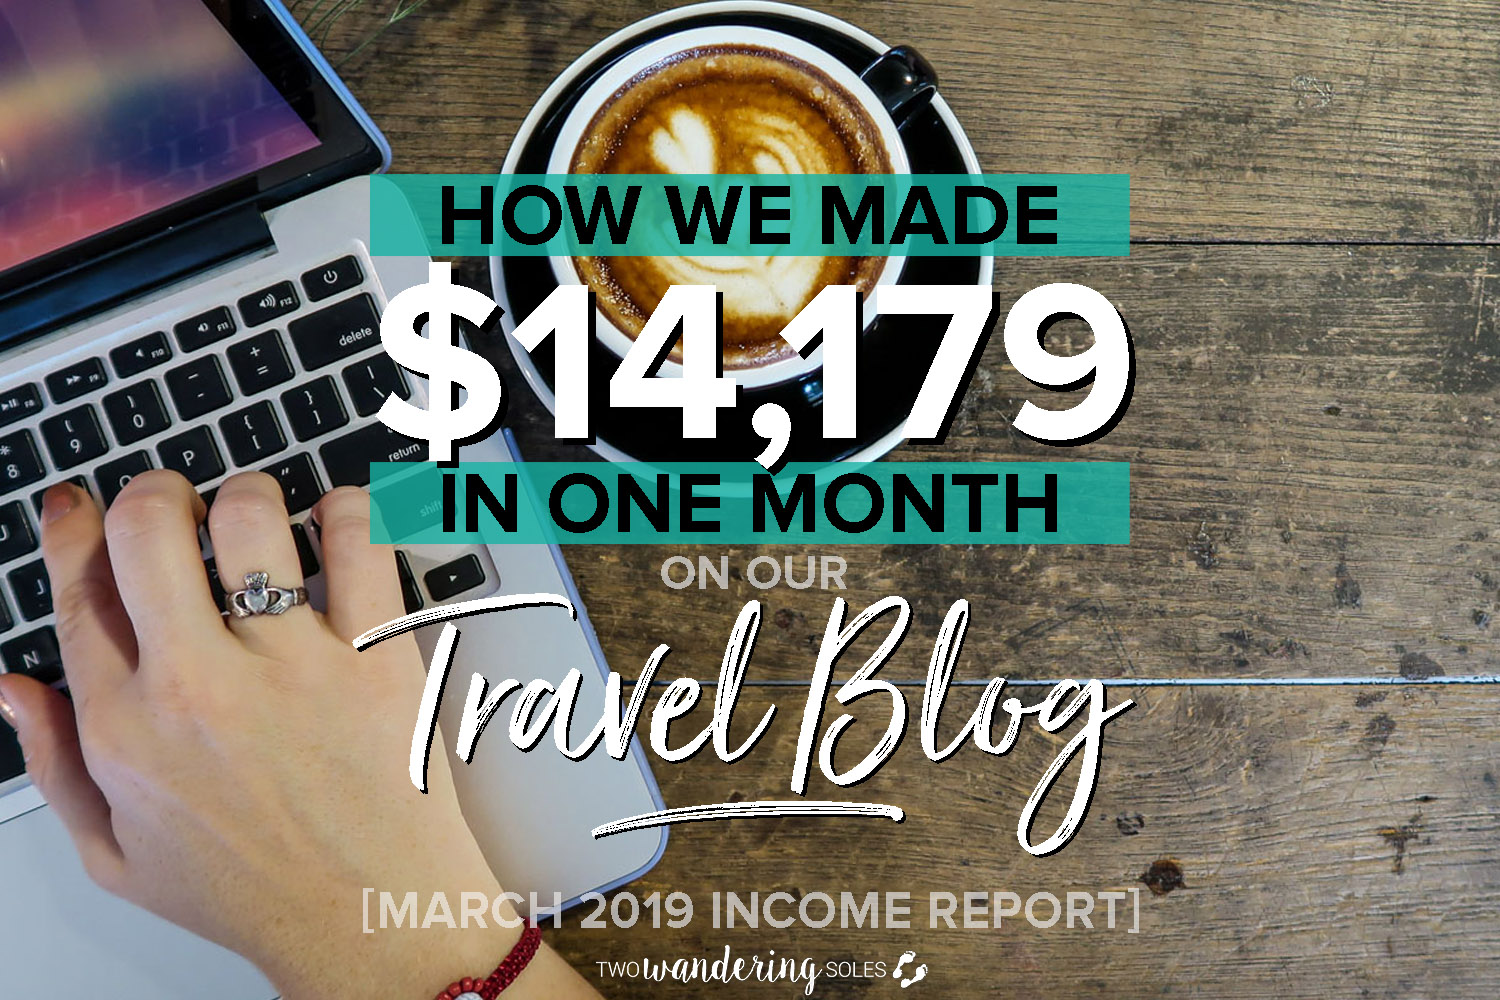 Travel Blog Monthly Income Report Making Money on a Blog